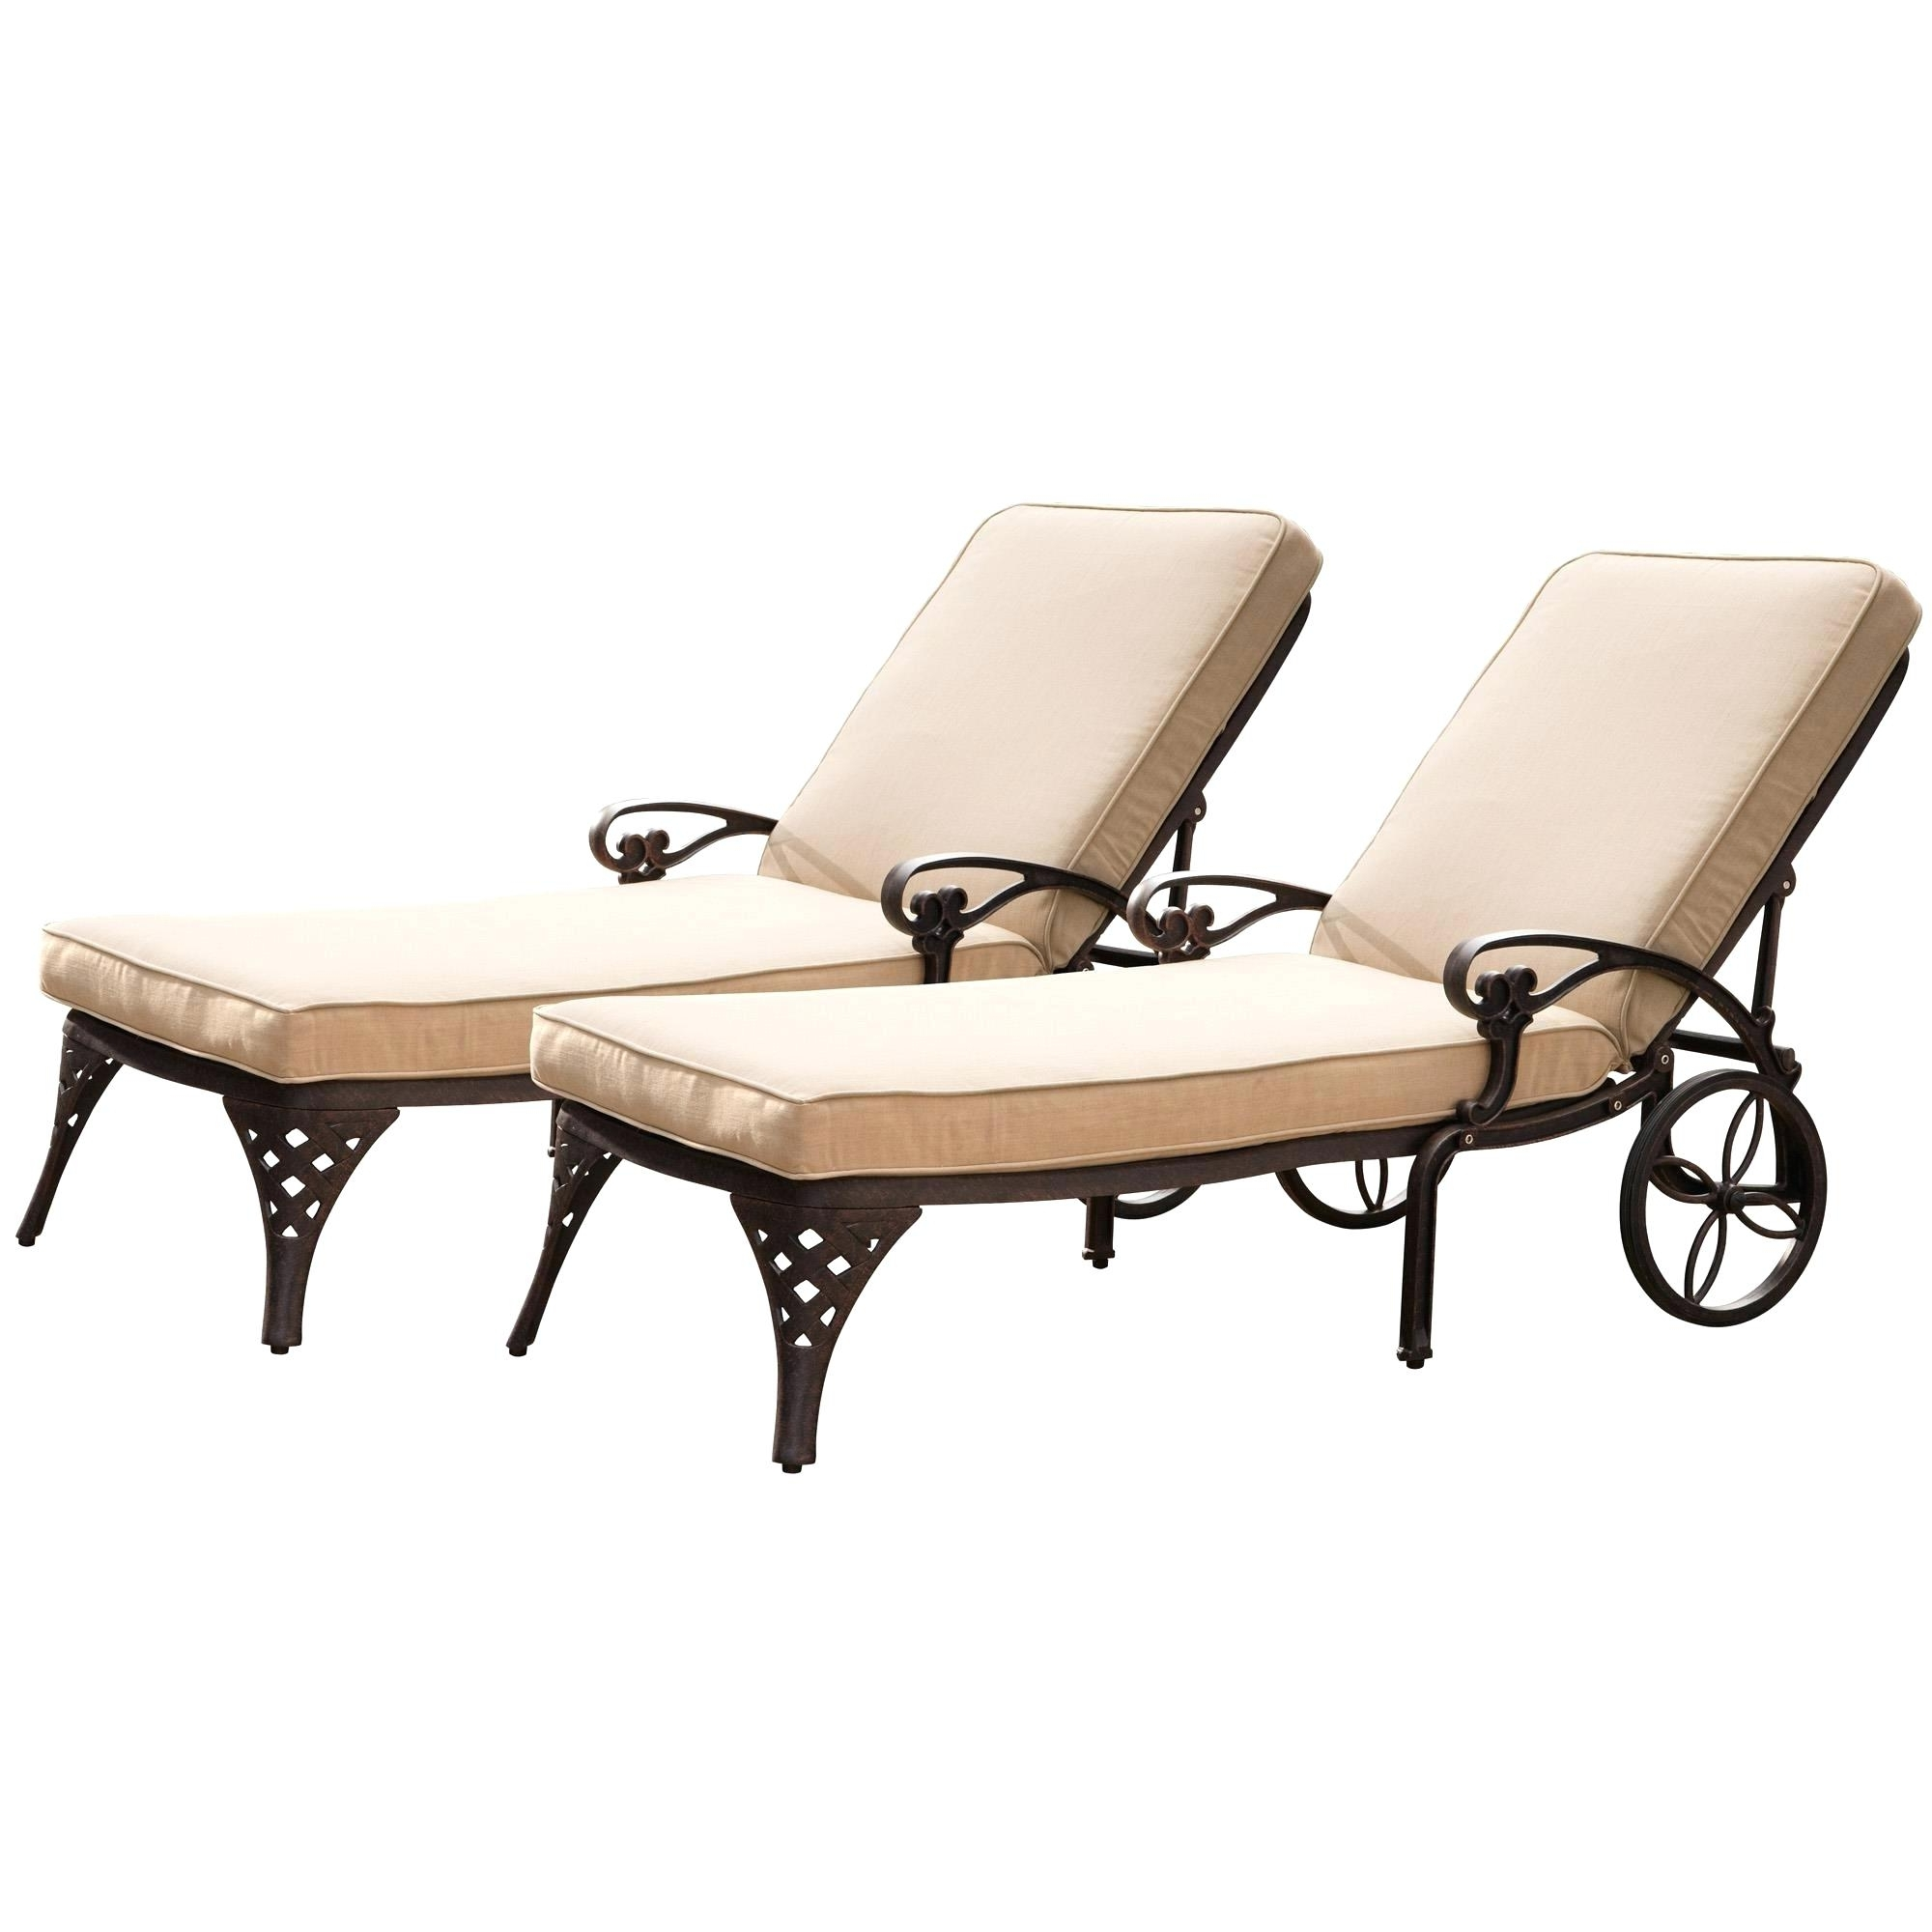 Inexpensive Pool Lounge Chairs Image Of Chaise Lounge Sofa For intended for Well-known Inexpensive Outdoor Chaise Lounge Chairs